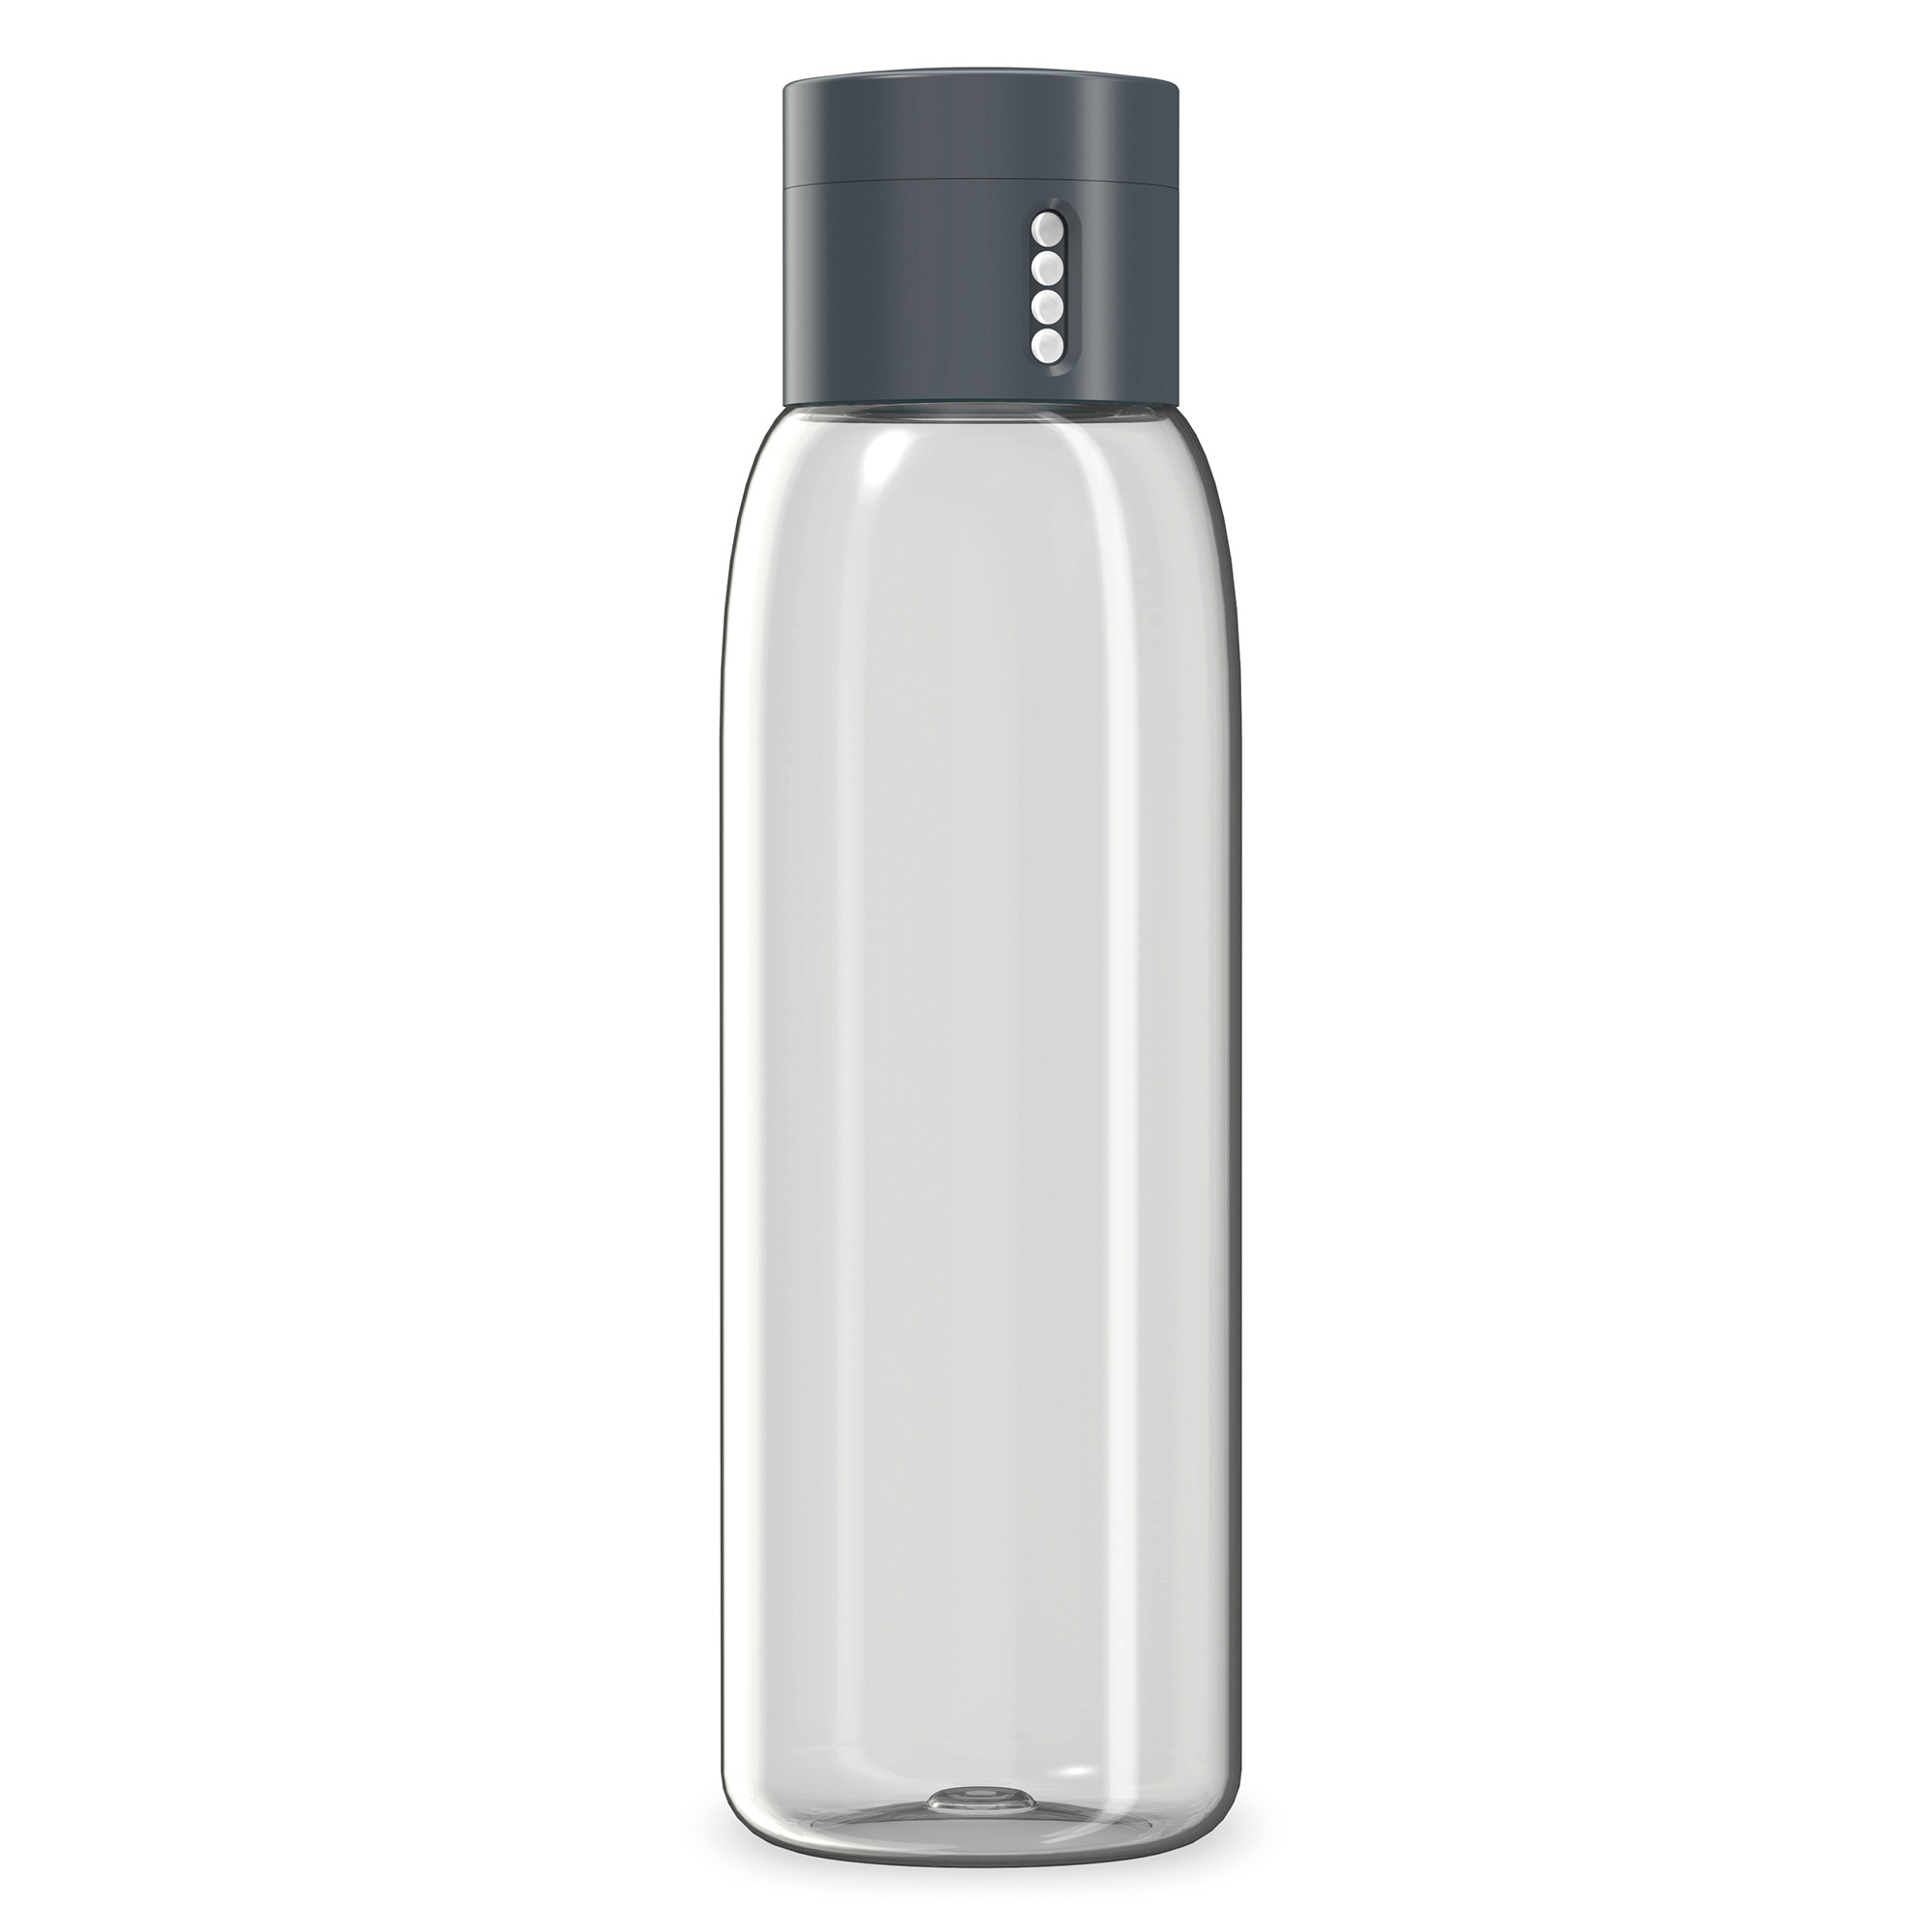 DOT HYDRATION TRACKING WATER BOTTLE 600ML GREY